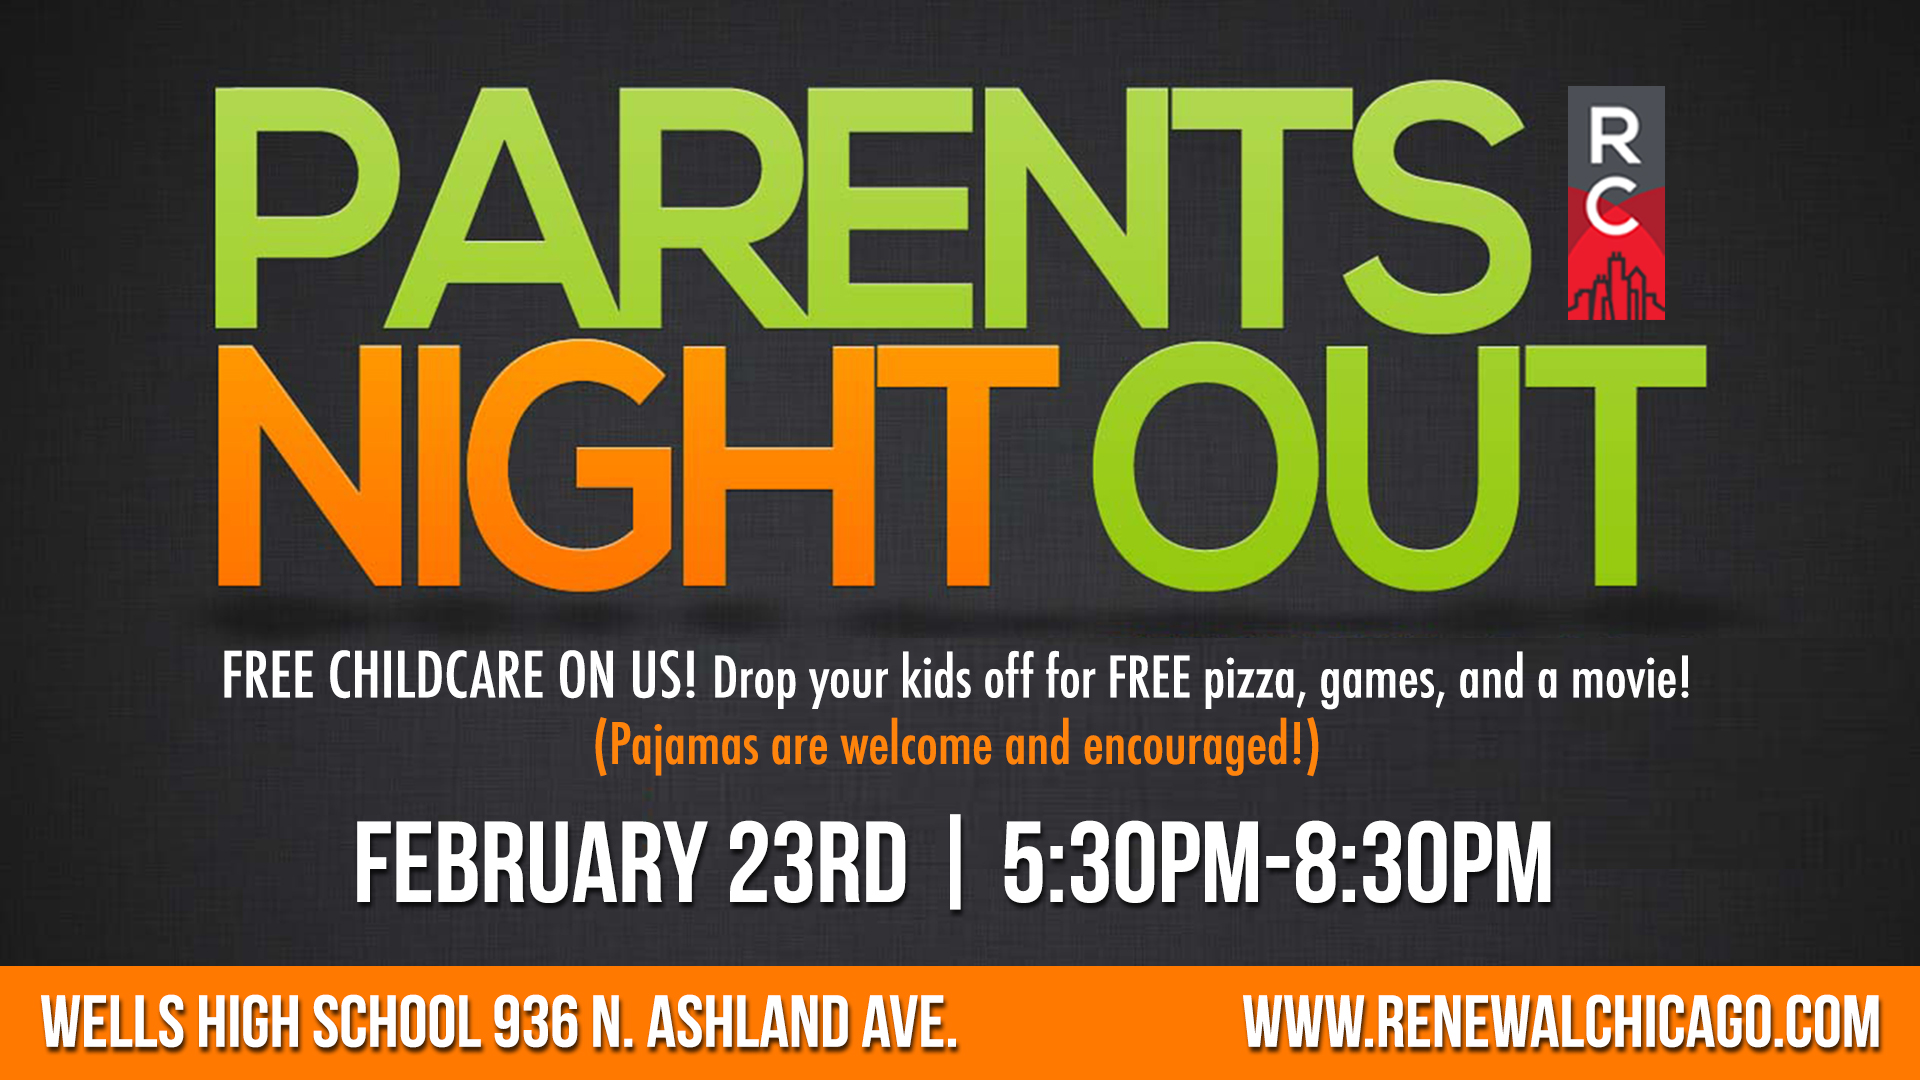 Parents Night Out feb 23 2018.jpg